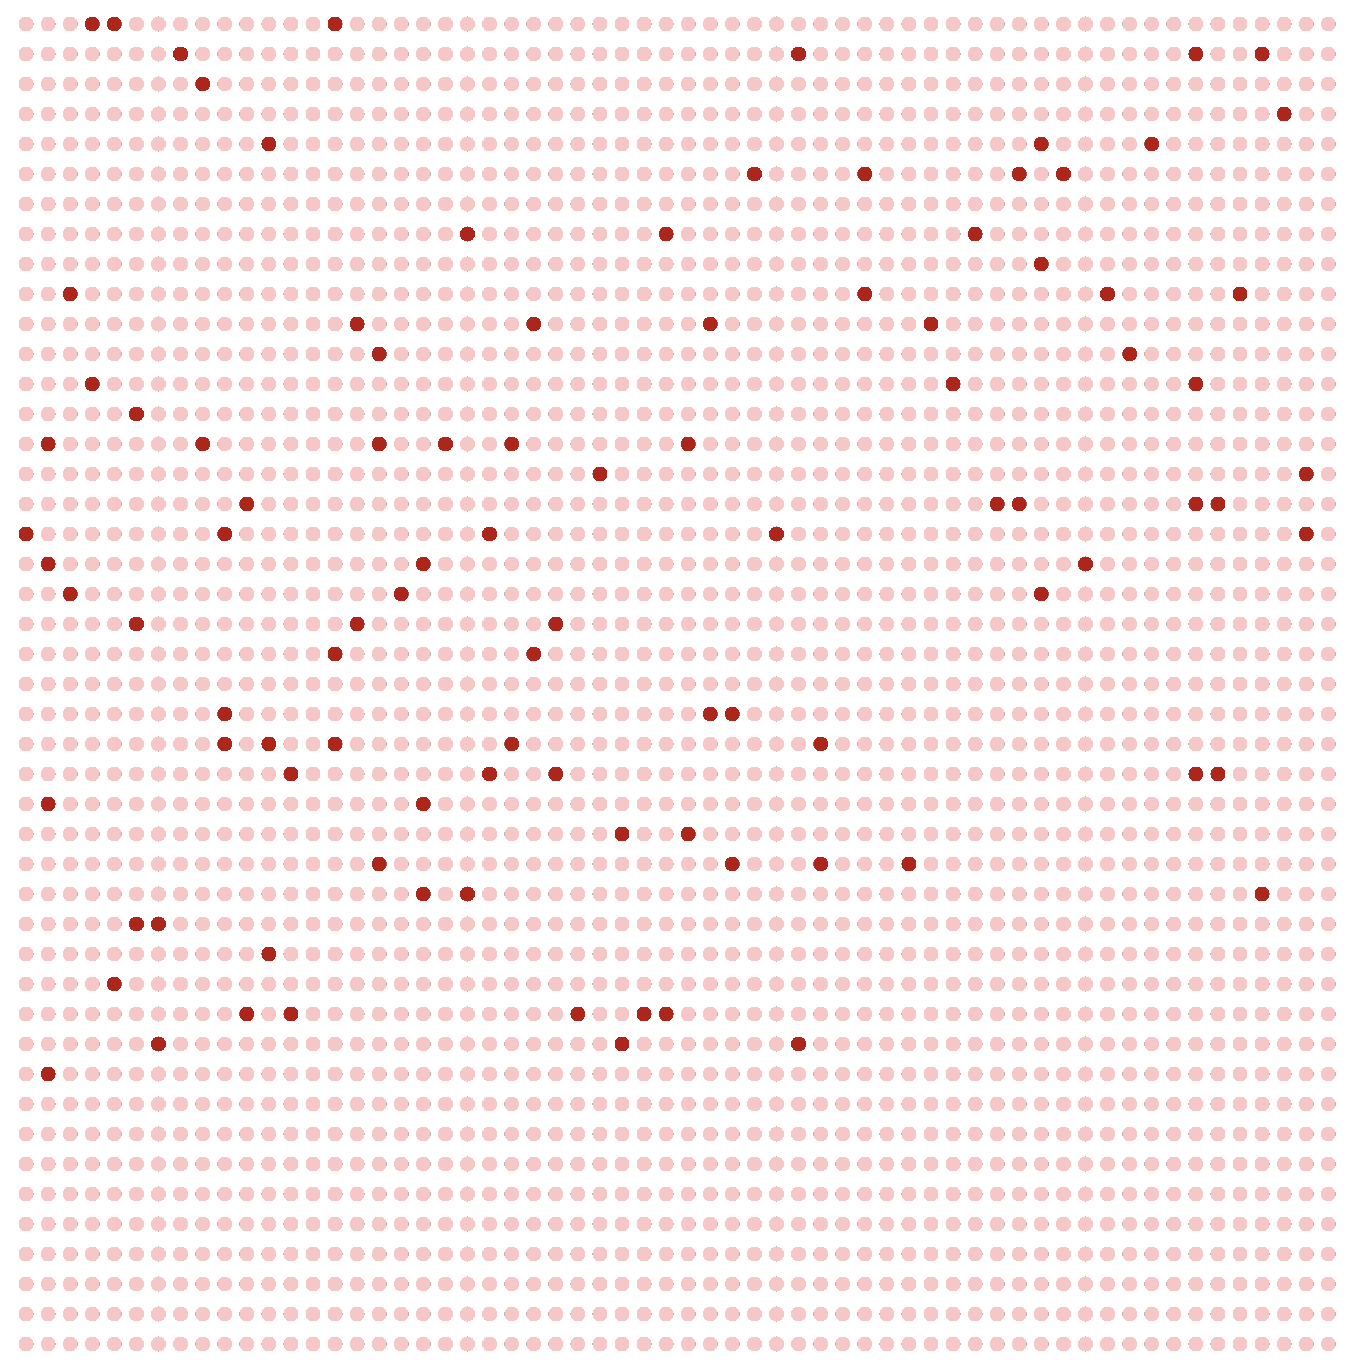 A large number of dots representing infected persons, with 100 highlighted to show the proportion requiring hospital admittance